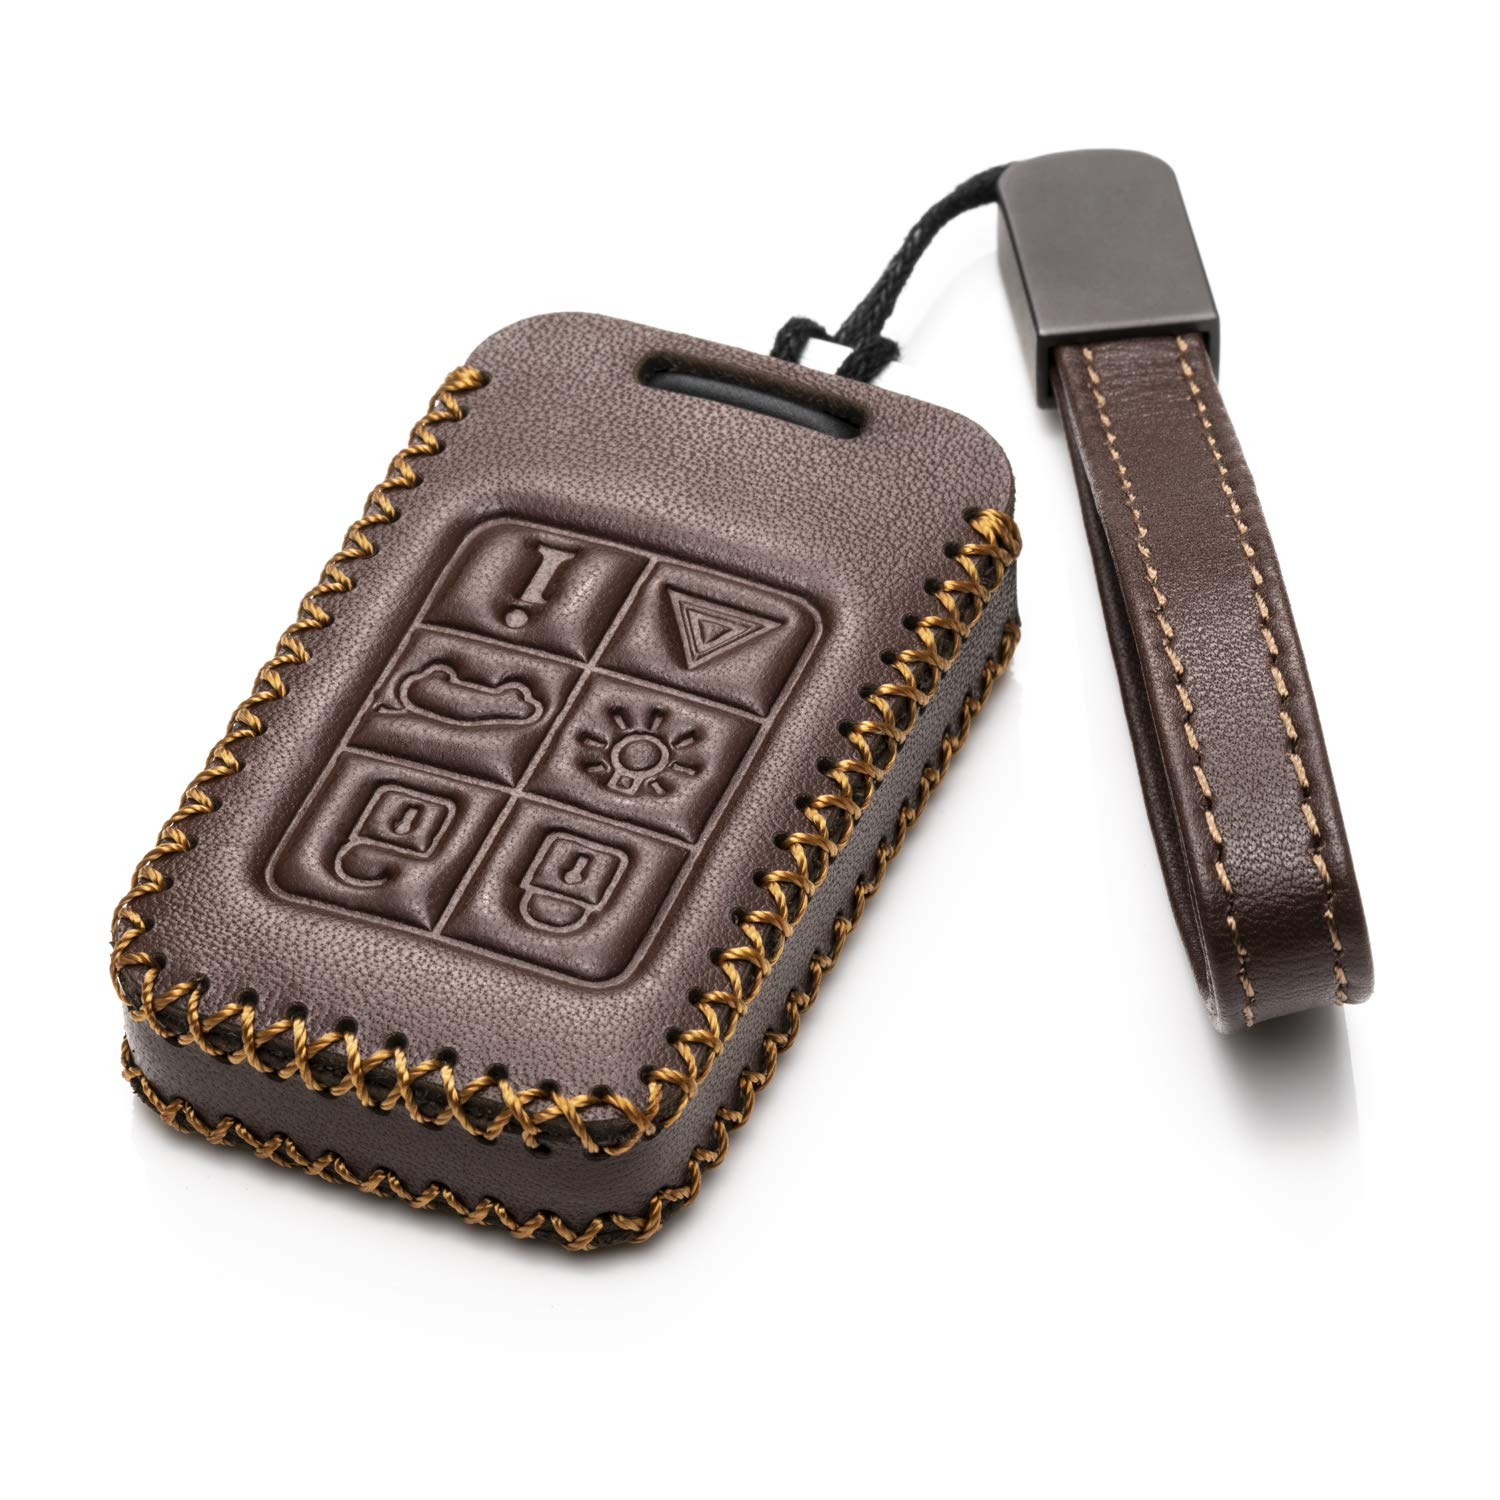 XC60 S80 6-Button, Red XC70 Vitodeco Genuine Leather Smart Key Fob Case Cover Protector with Key Chain for Volvo S60 V70